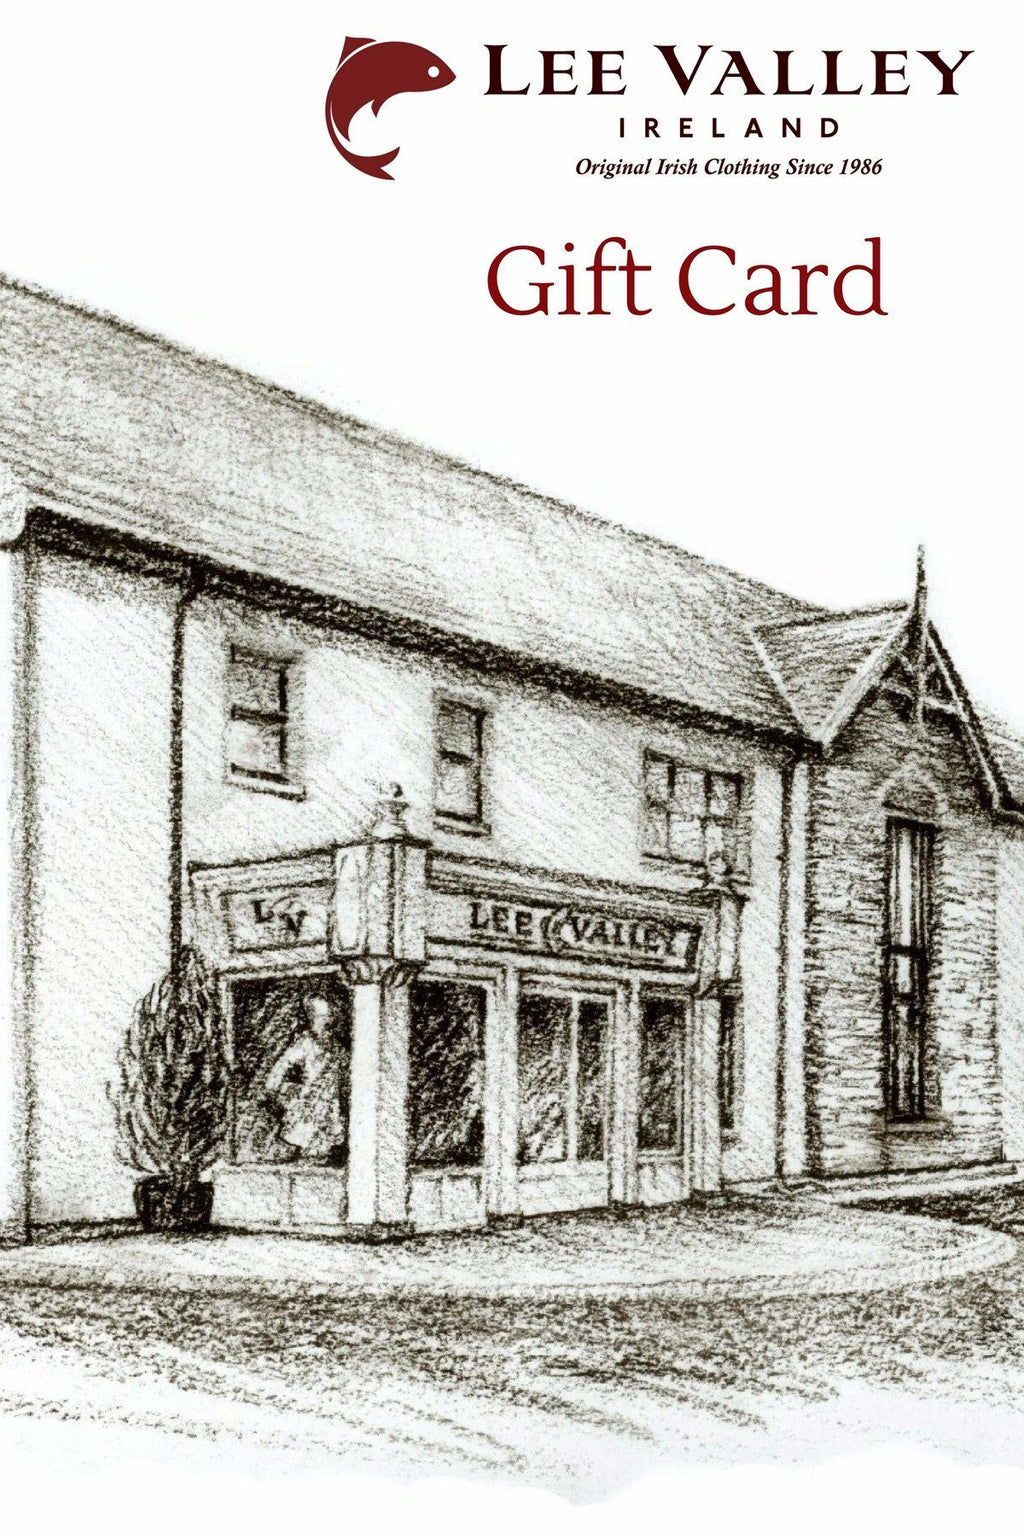 Voucher / Gift Card Gift Card Lee Valley Ireland